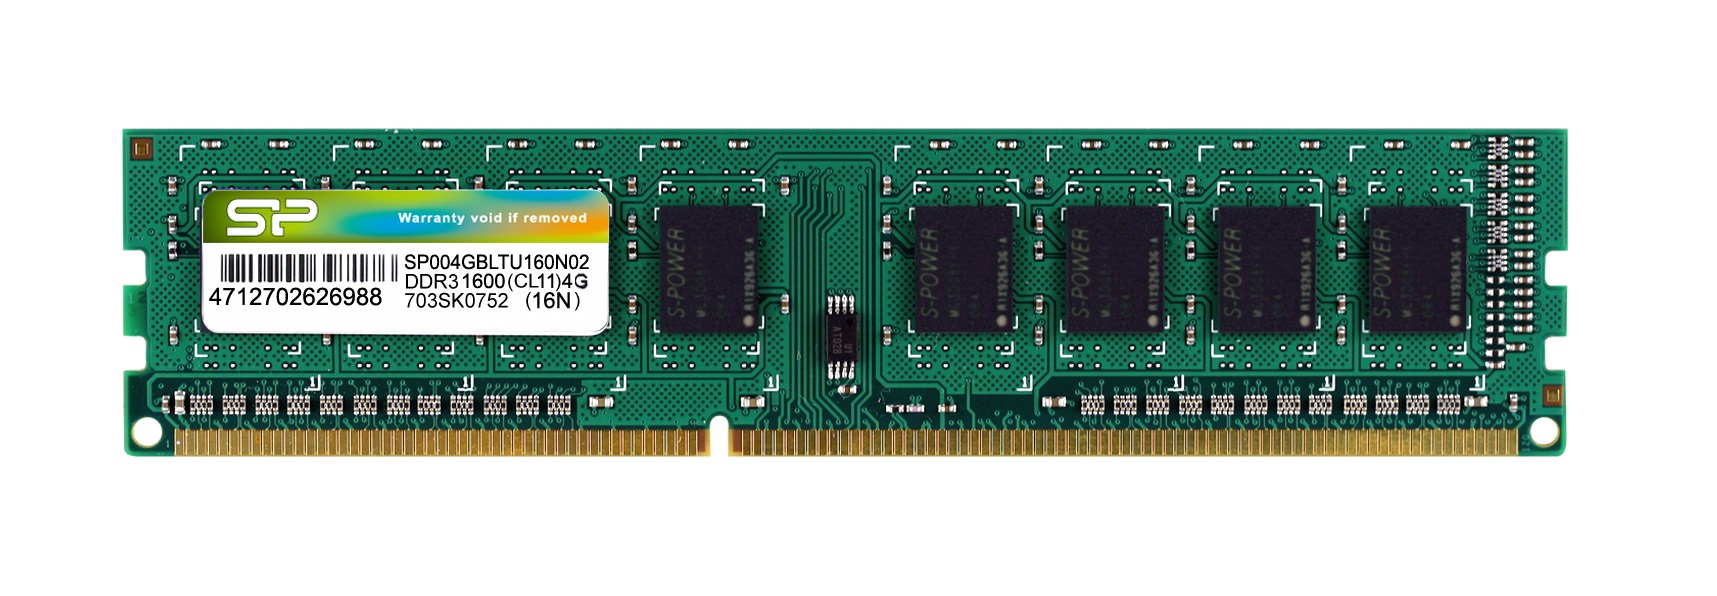 https://www.memoryc.com/images/products/bb/silicon-power-ddr3-desktop-4gb-14532-2_10243.jpg